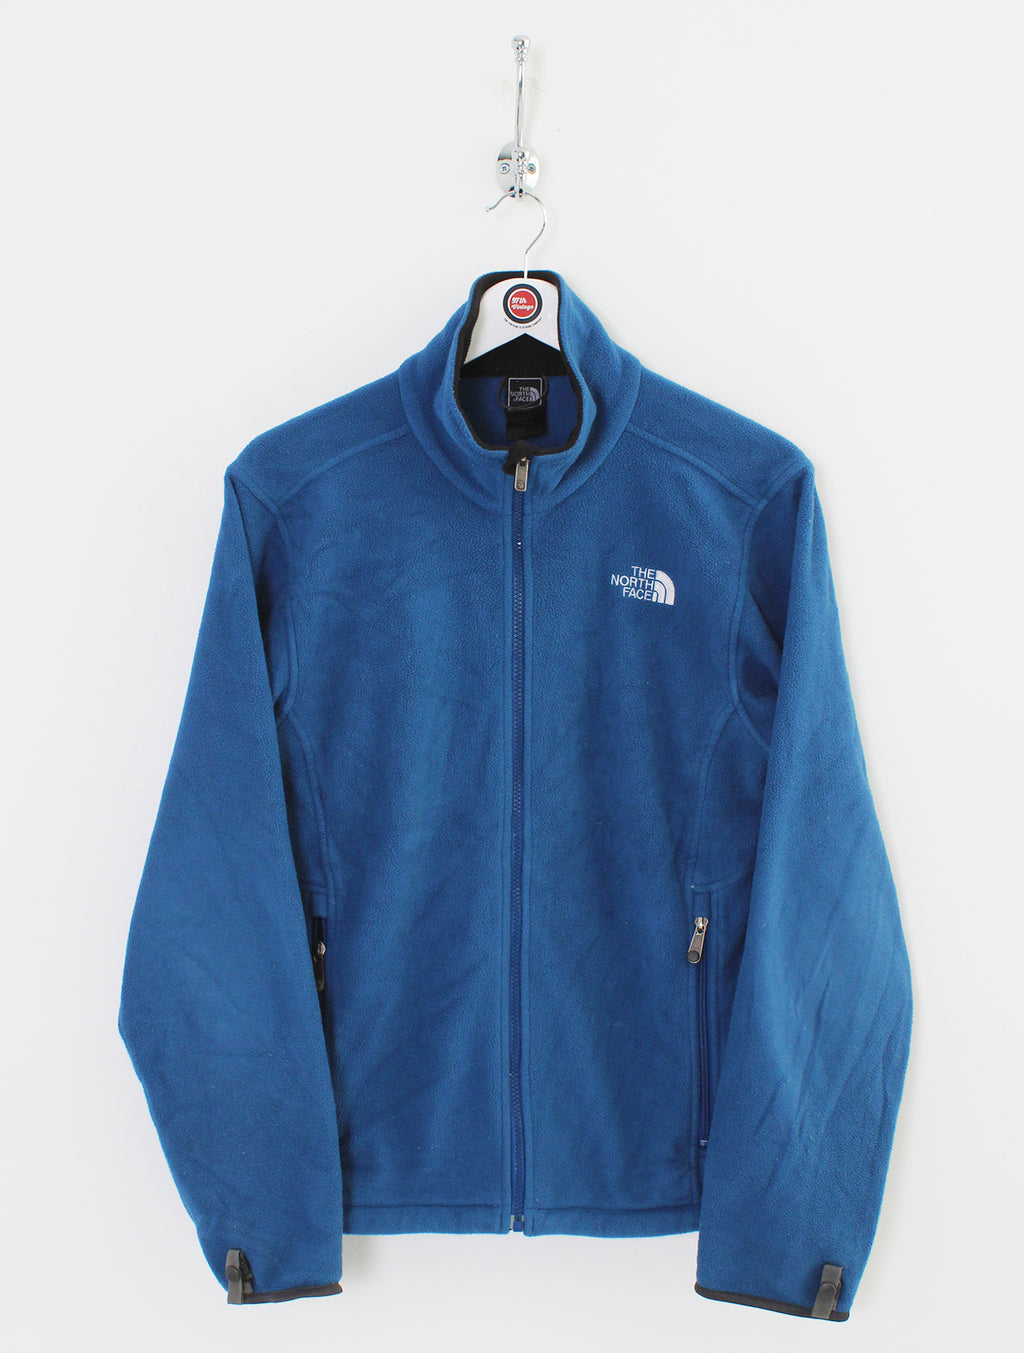 The North Face Fleece (S)